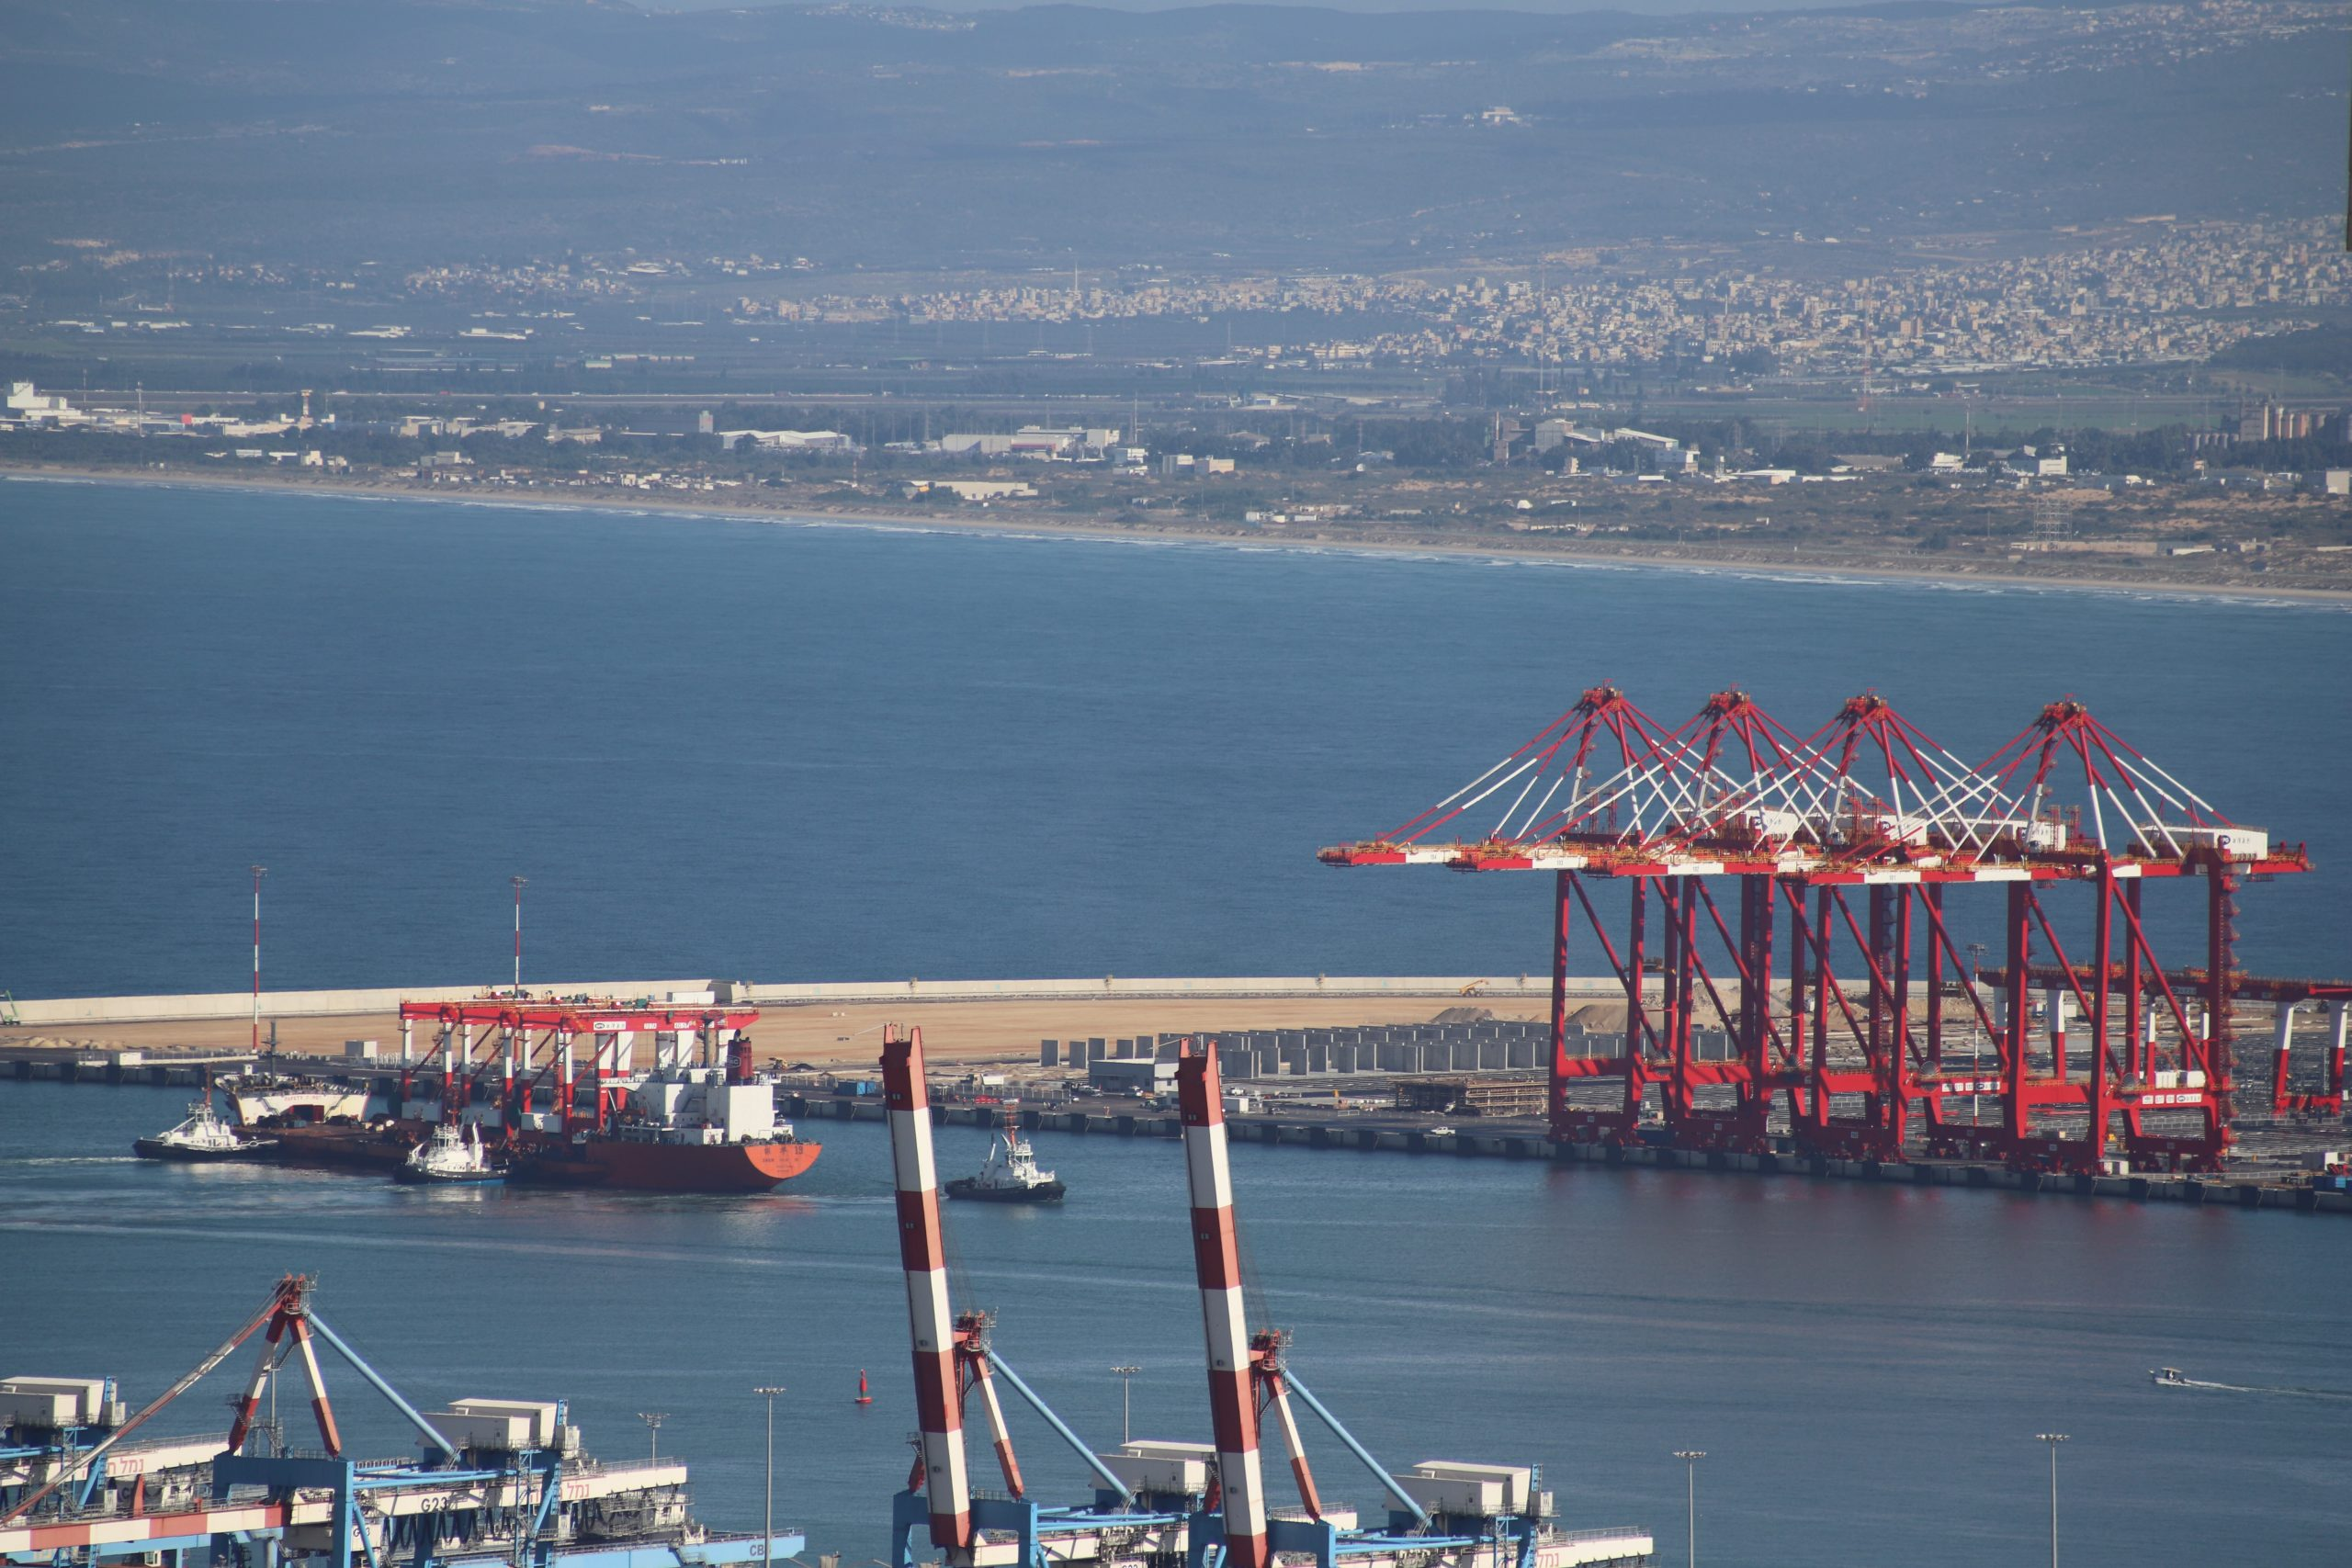 Another batch of cranes arrives to Chinese-owned port in Haifa Bay